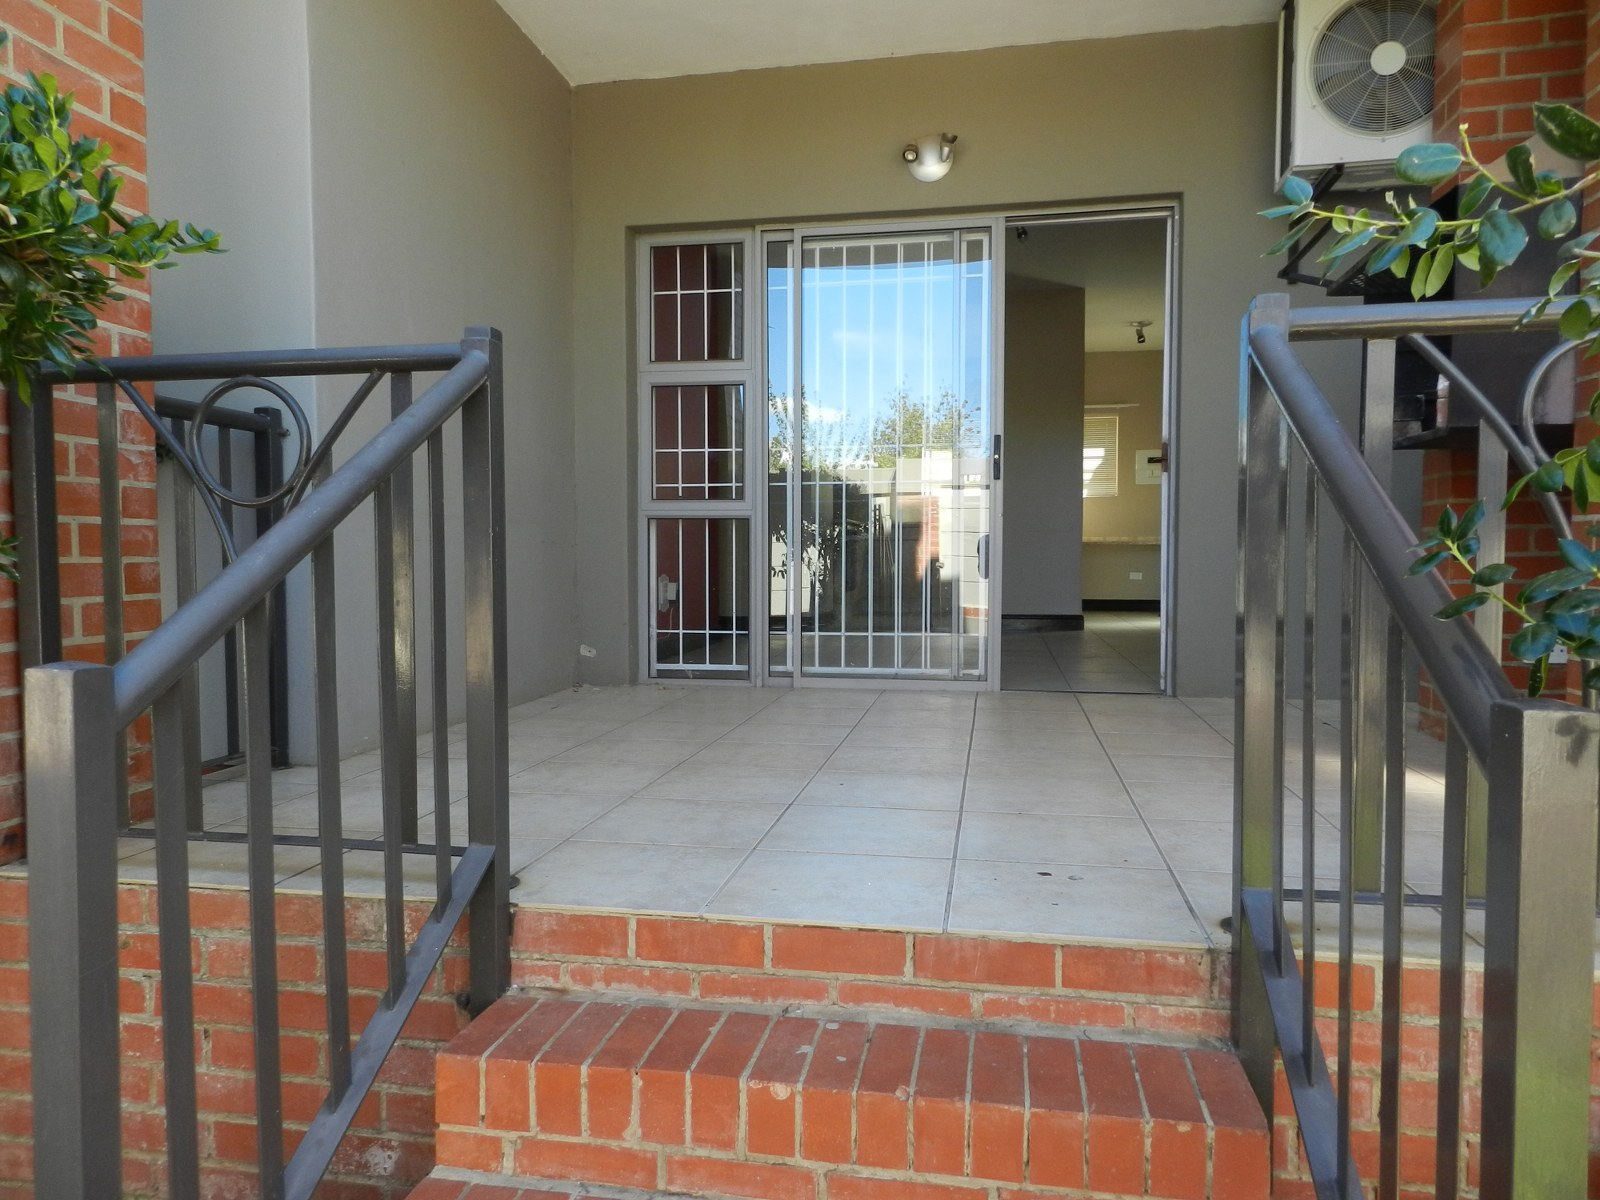 2 BedroomTownhouse For Sale In Dassie Rand